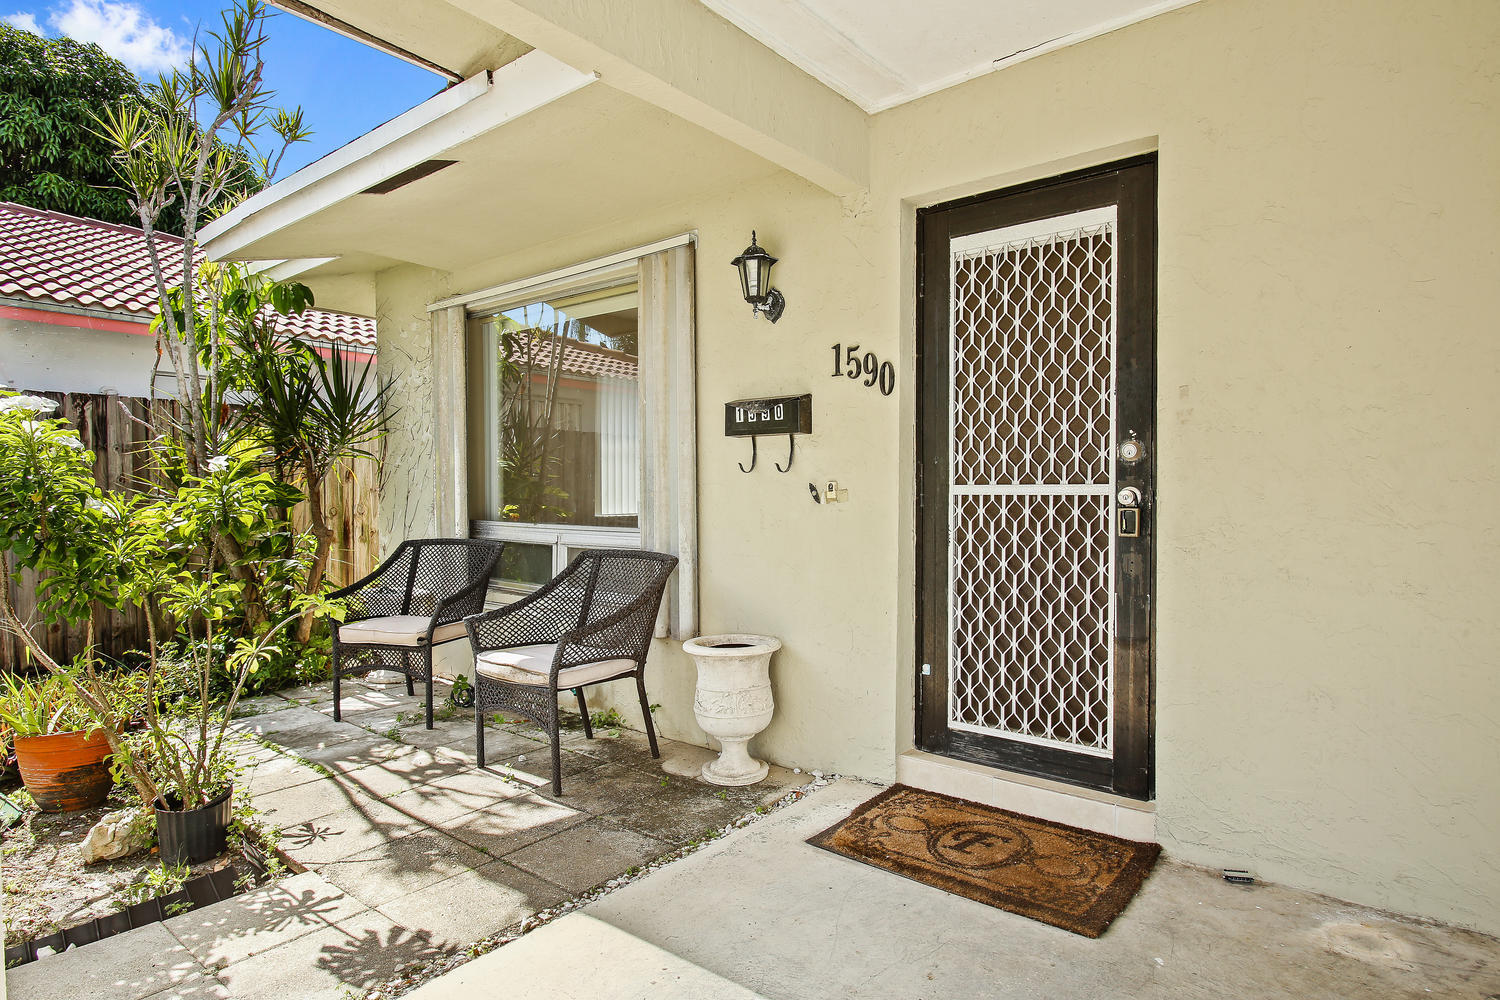 Home for sale in OAKLAND PARK SECOND ADD Oakland Park Florida